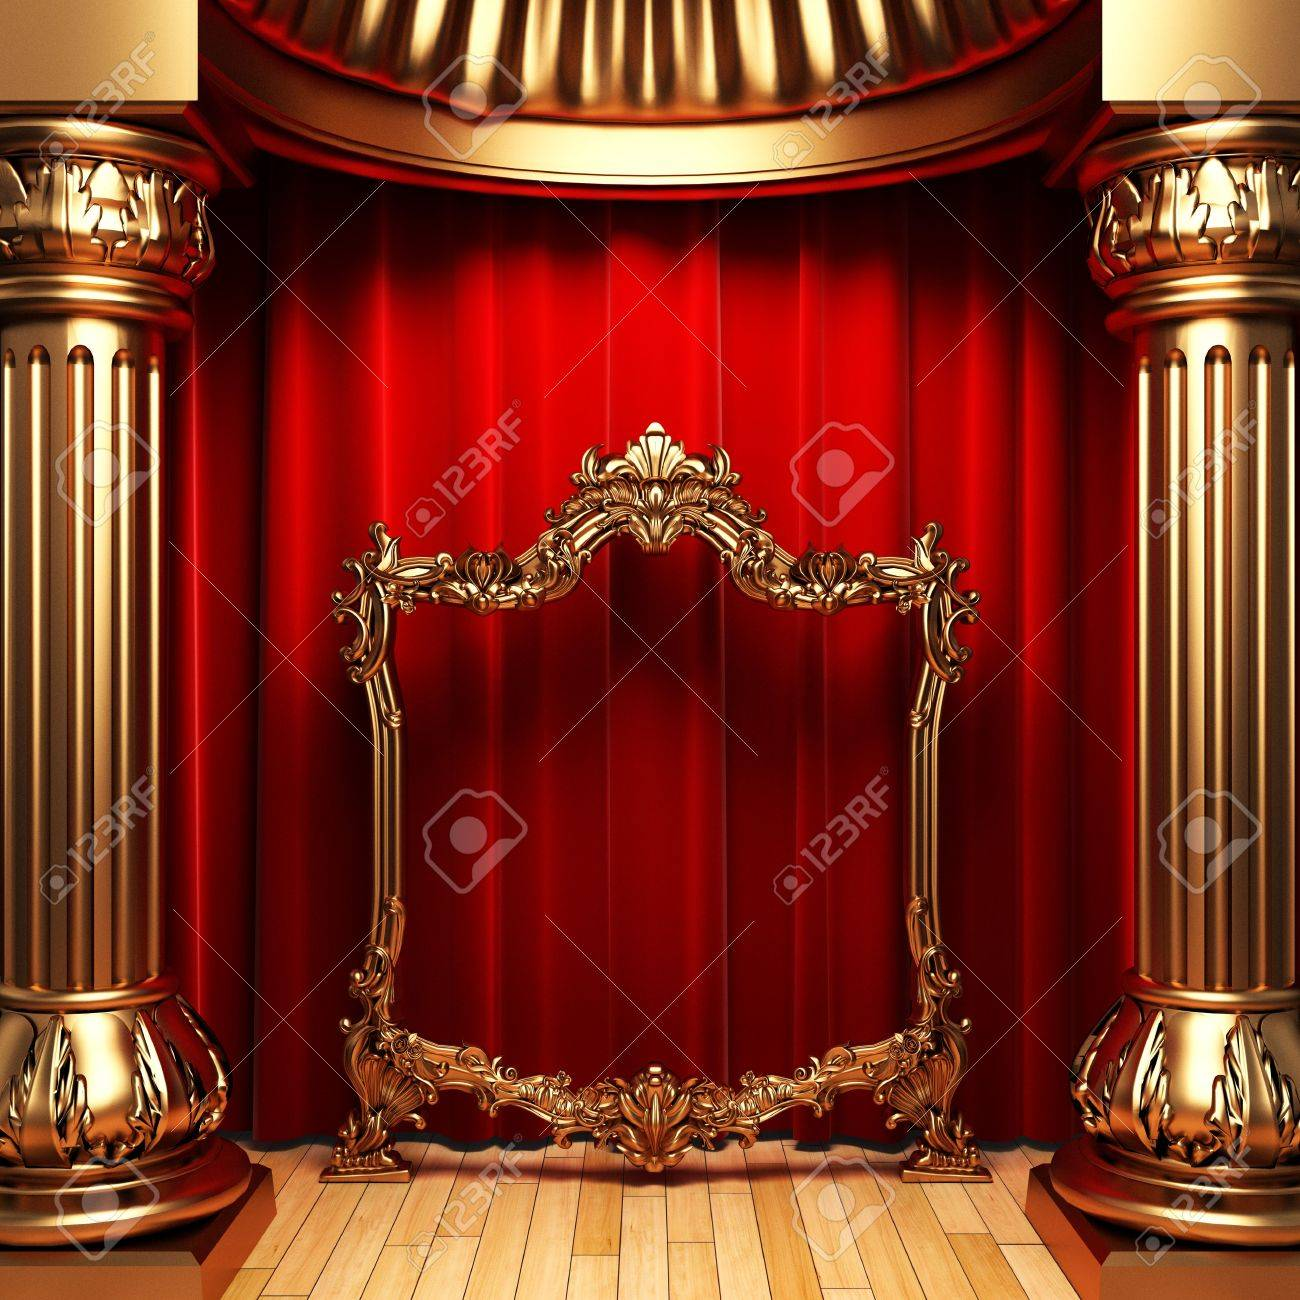 red curtains, gold columns and frame Stock Photo - 6138813